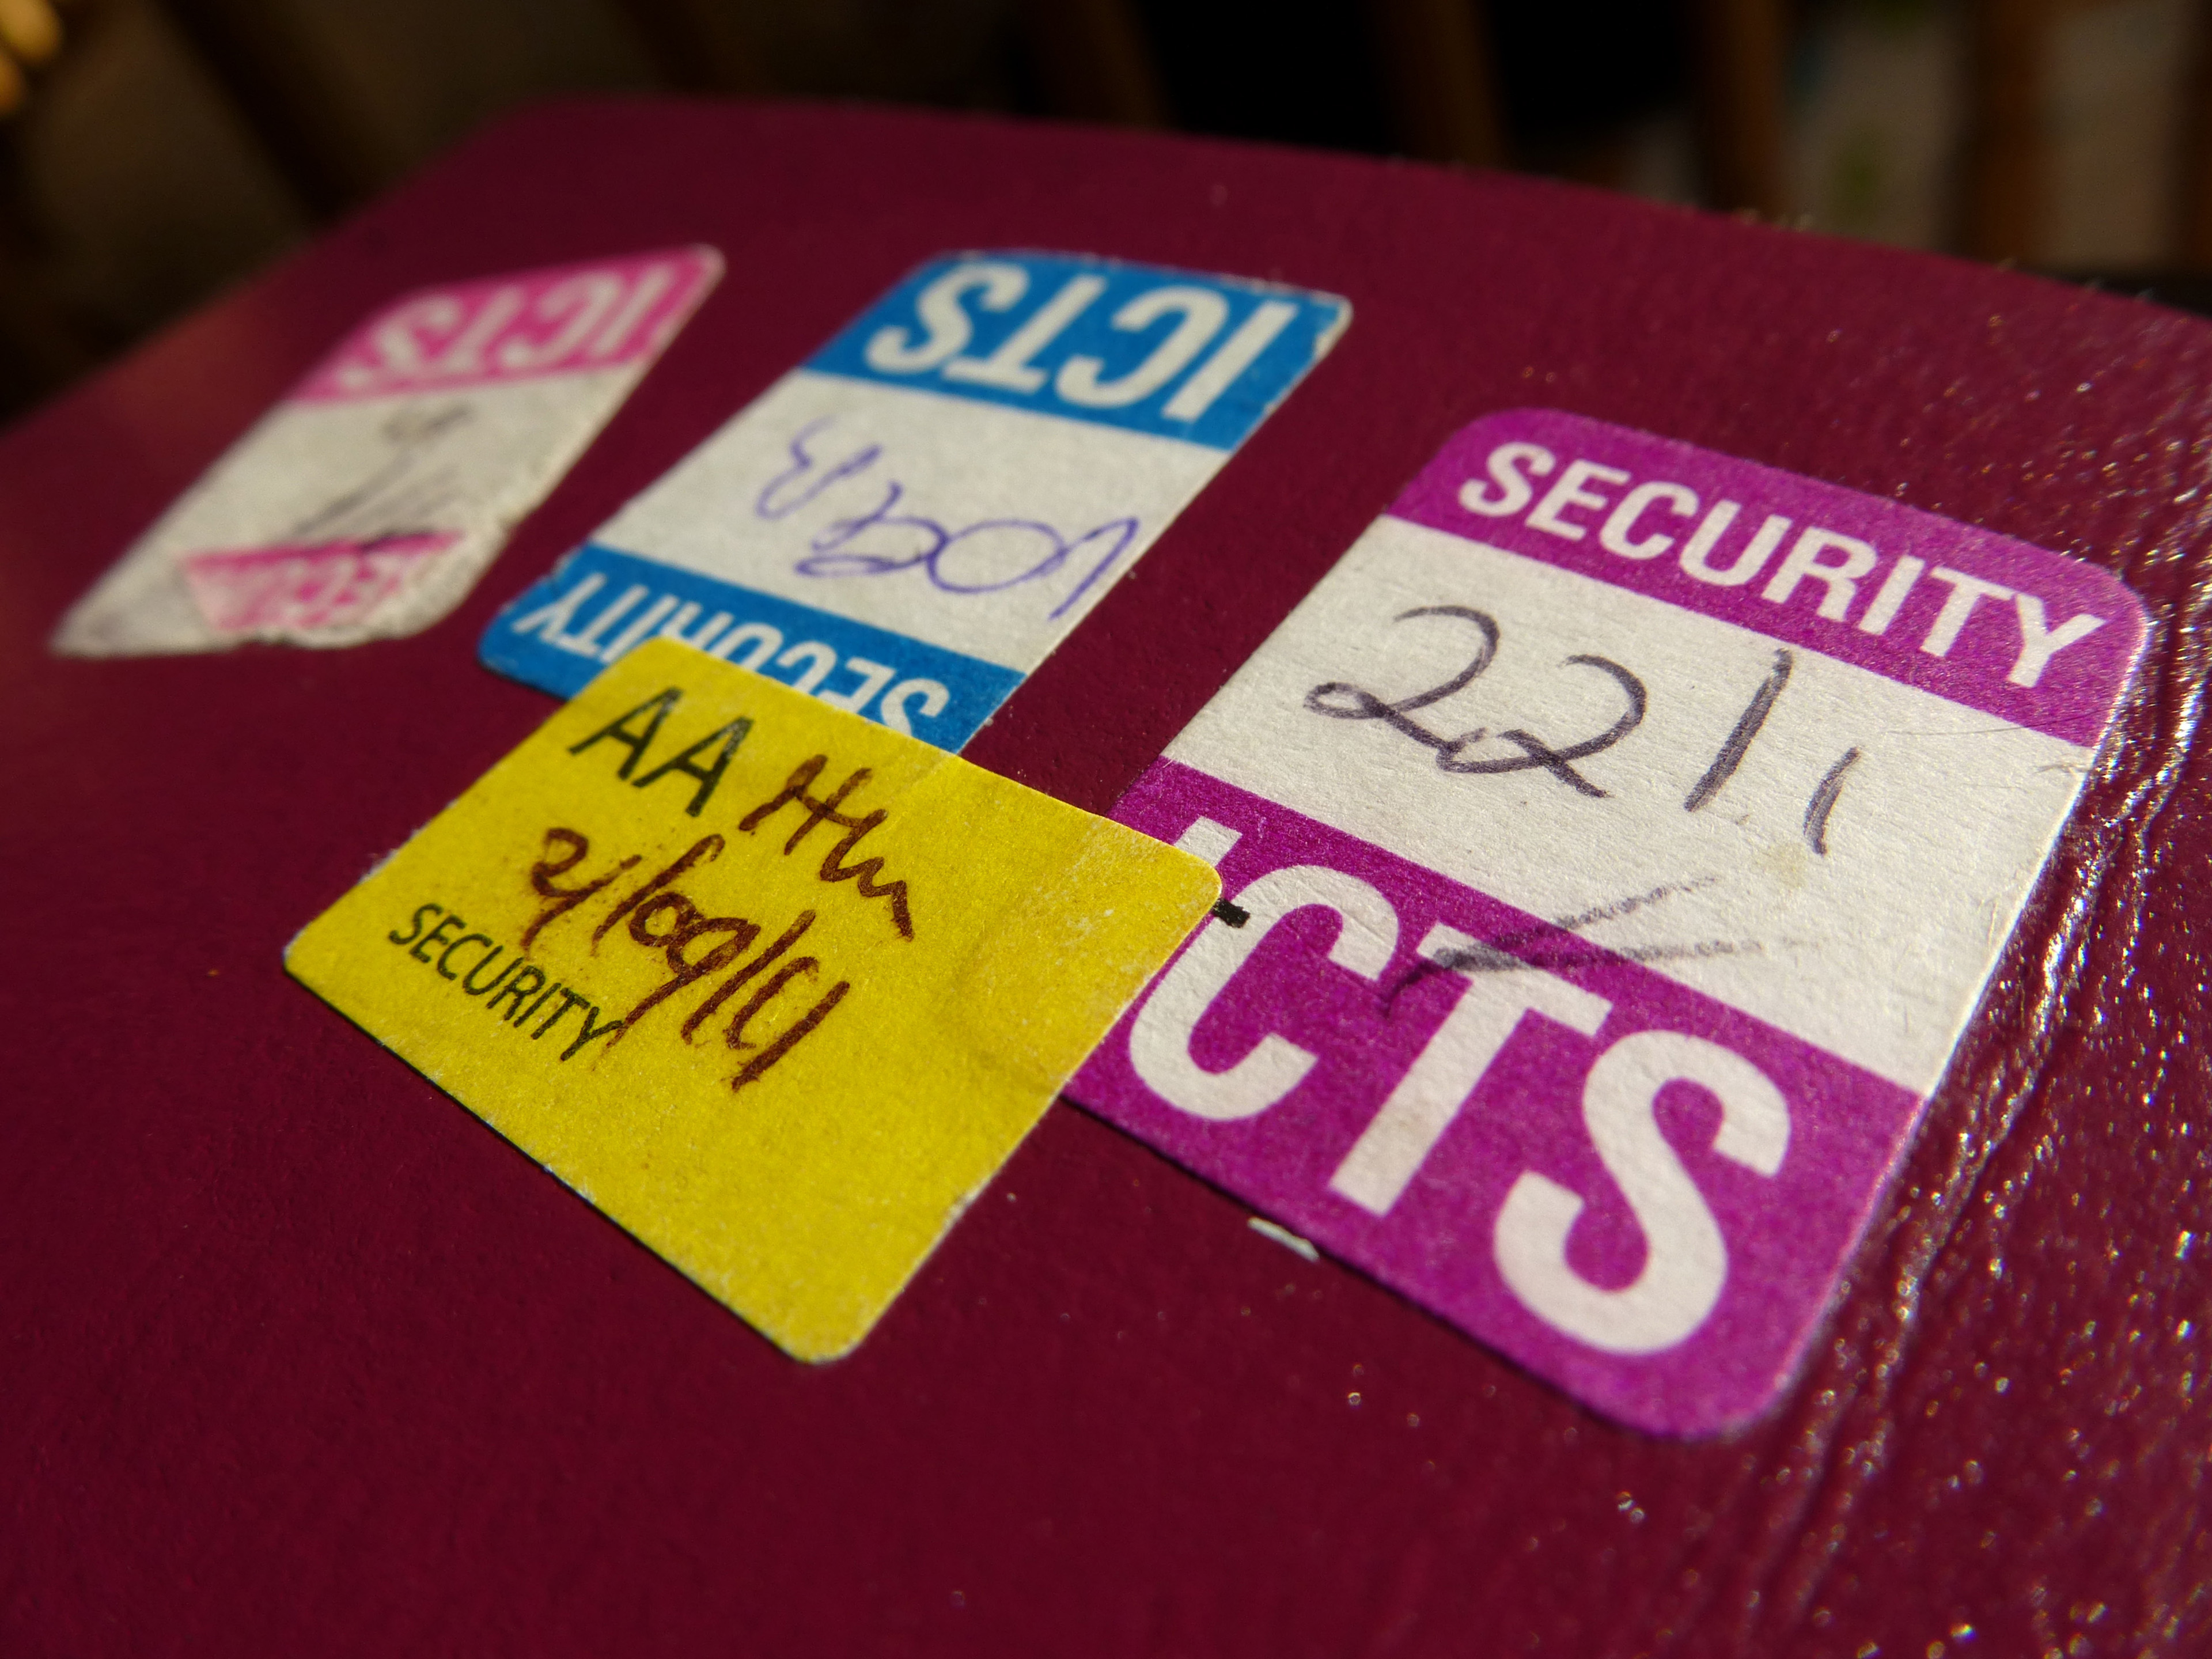 Security stickers aded to a passport to confirm the passenger has been checked by security